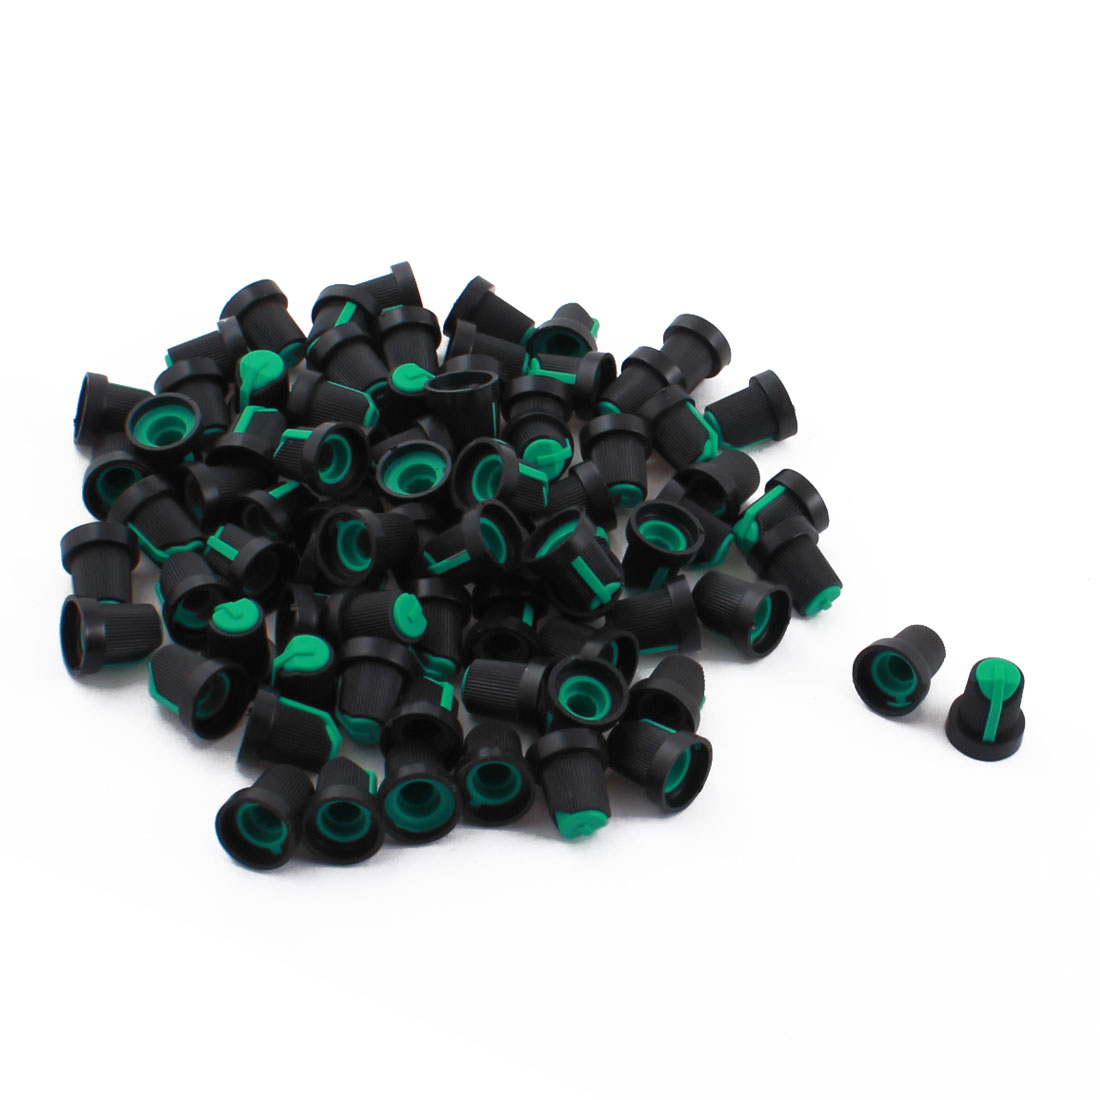 80 Pcs Plastic 5.5mm Knurled Shaft Taper Volume Knob Cap for Potentiometer Pot